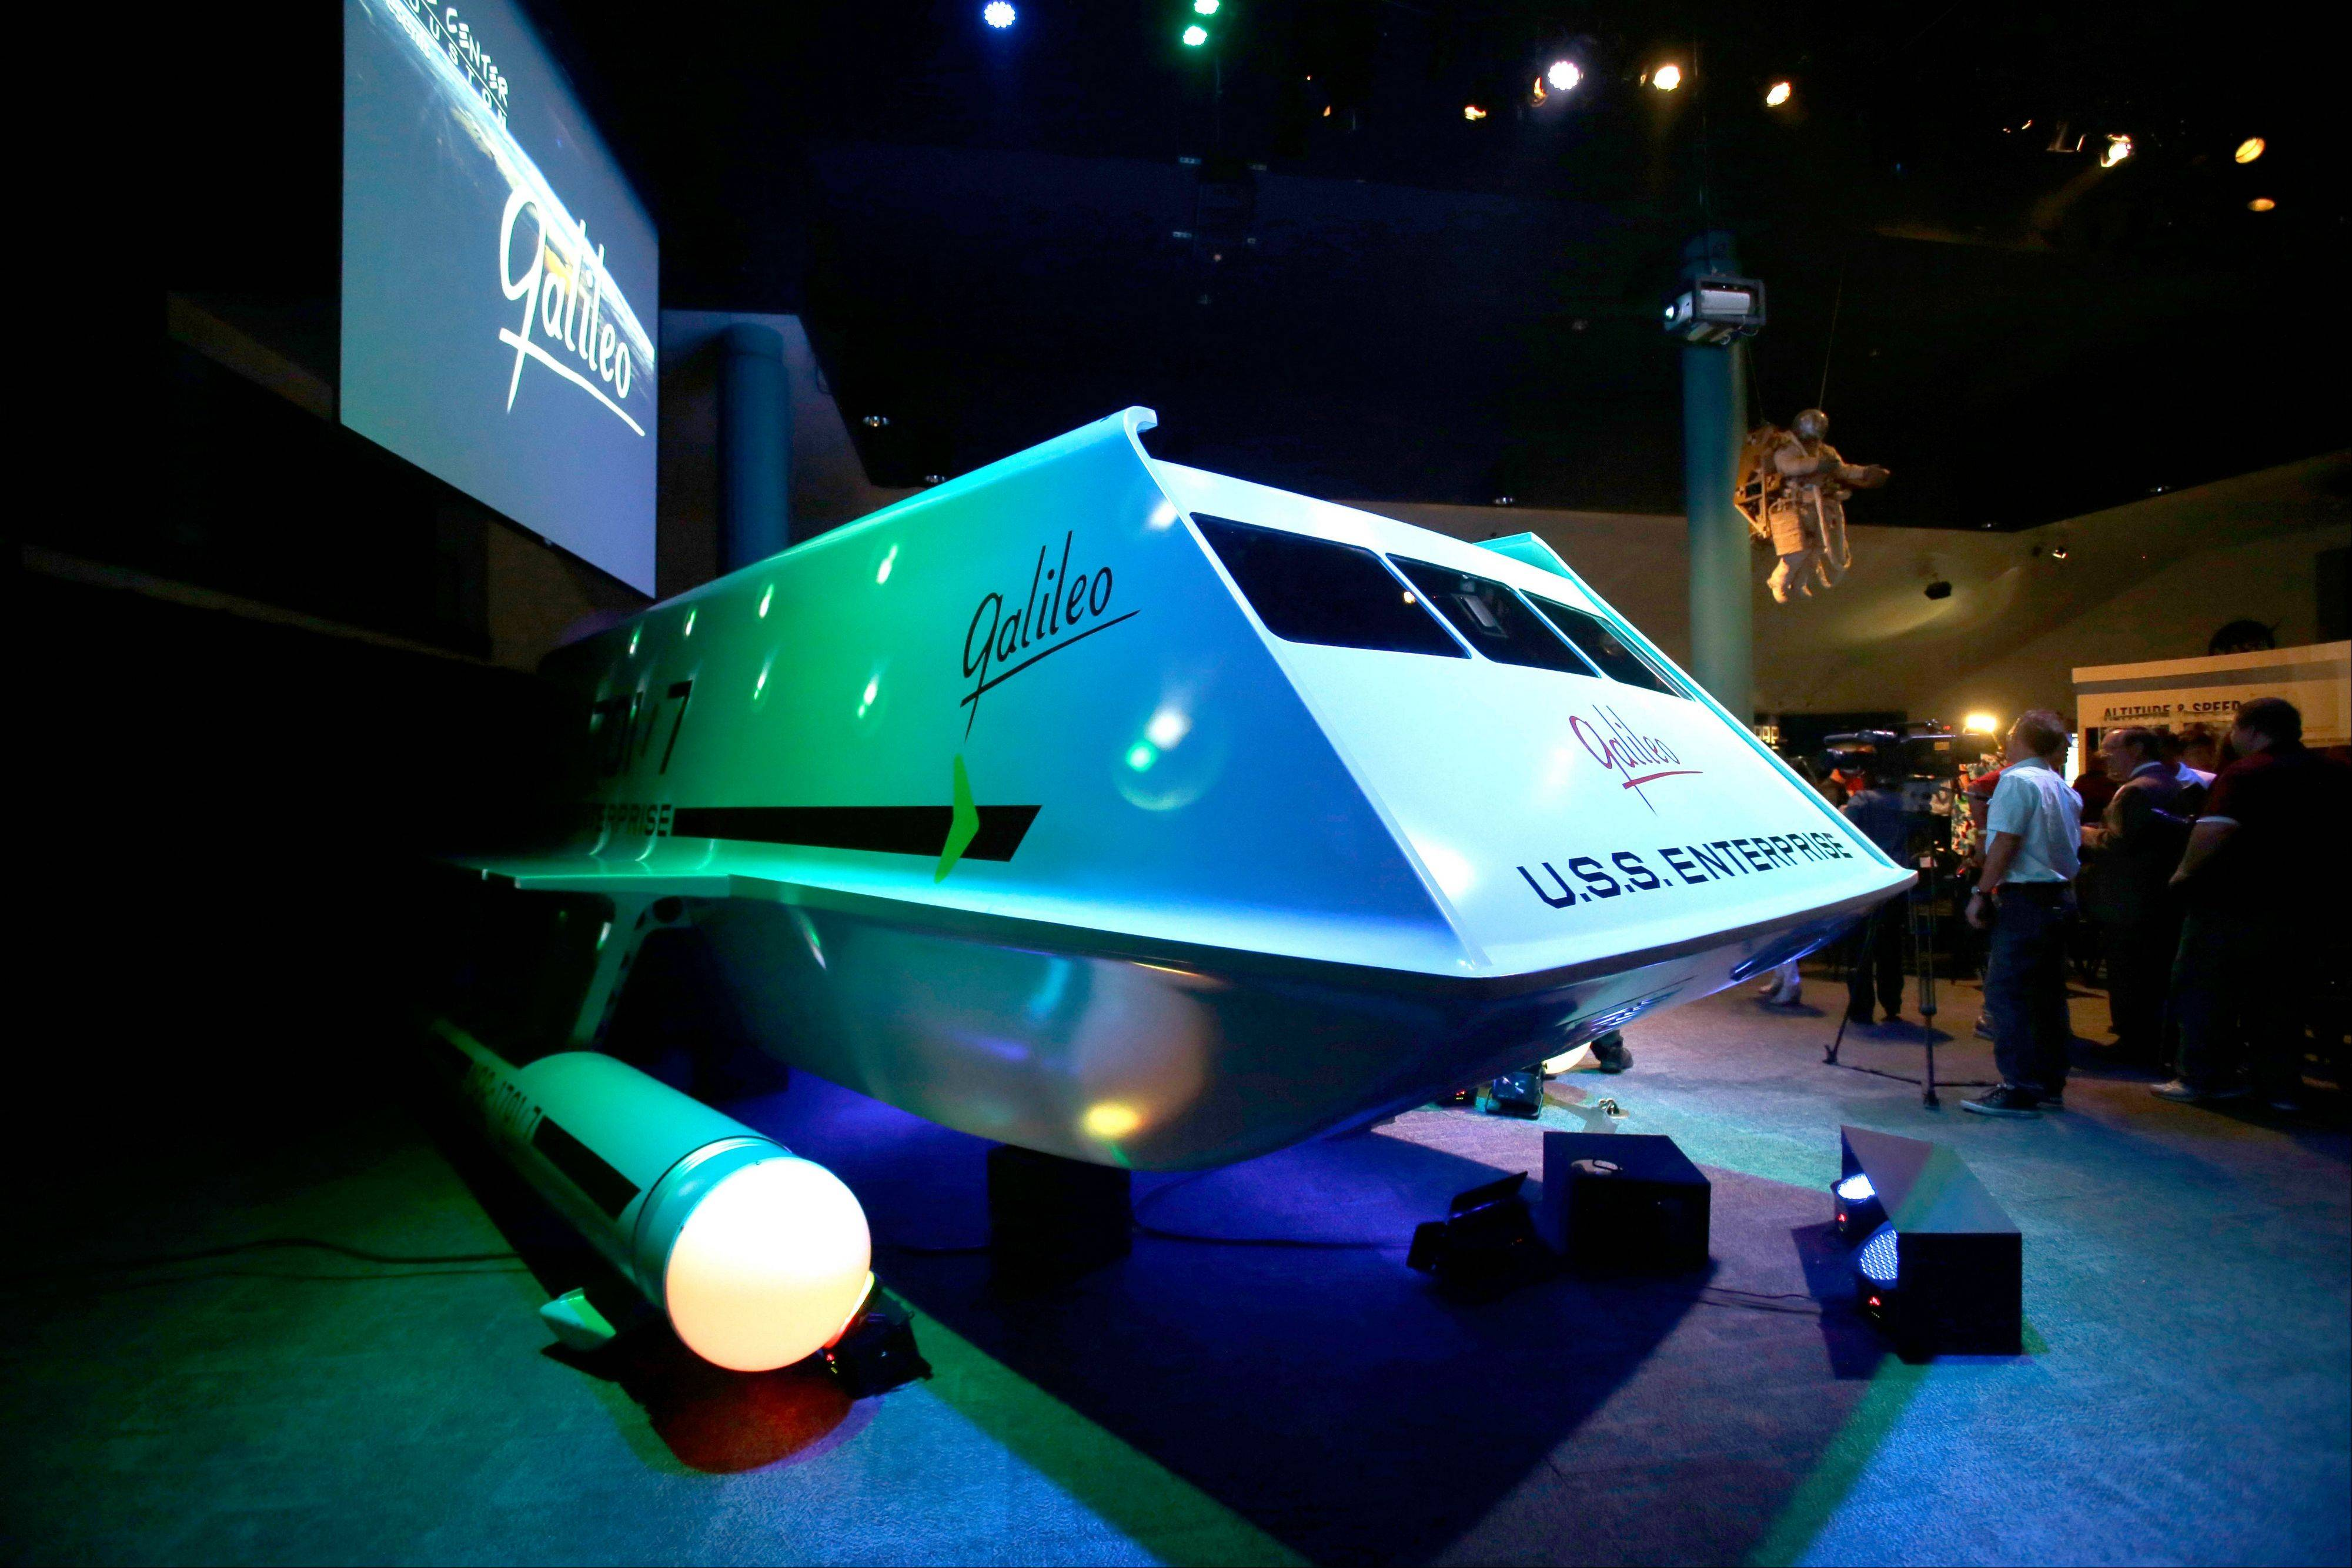 "The restored space shuttle Galileo from the 1960's television show ""Star Trek"" is unveiled at Space Center Houston in Houston."